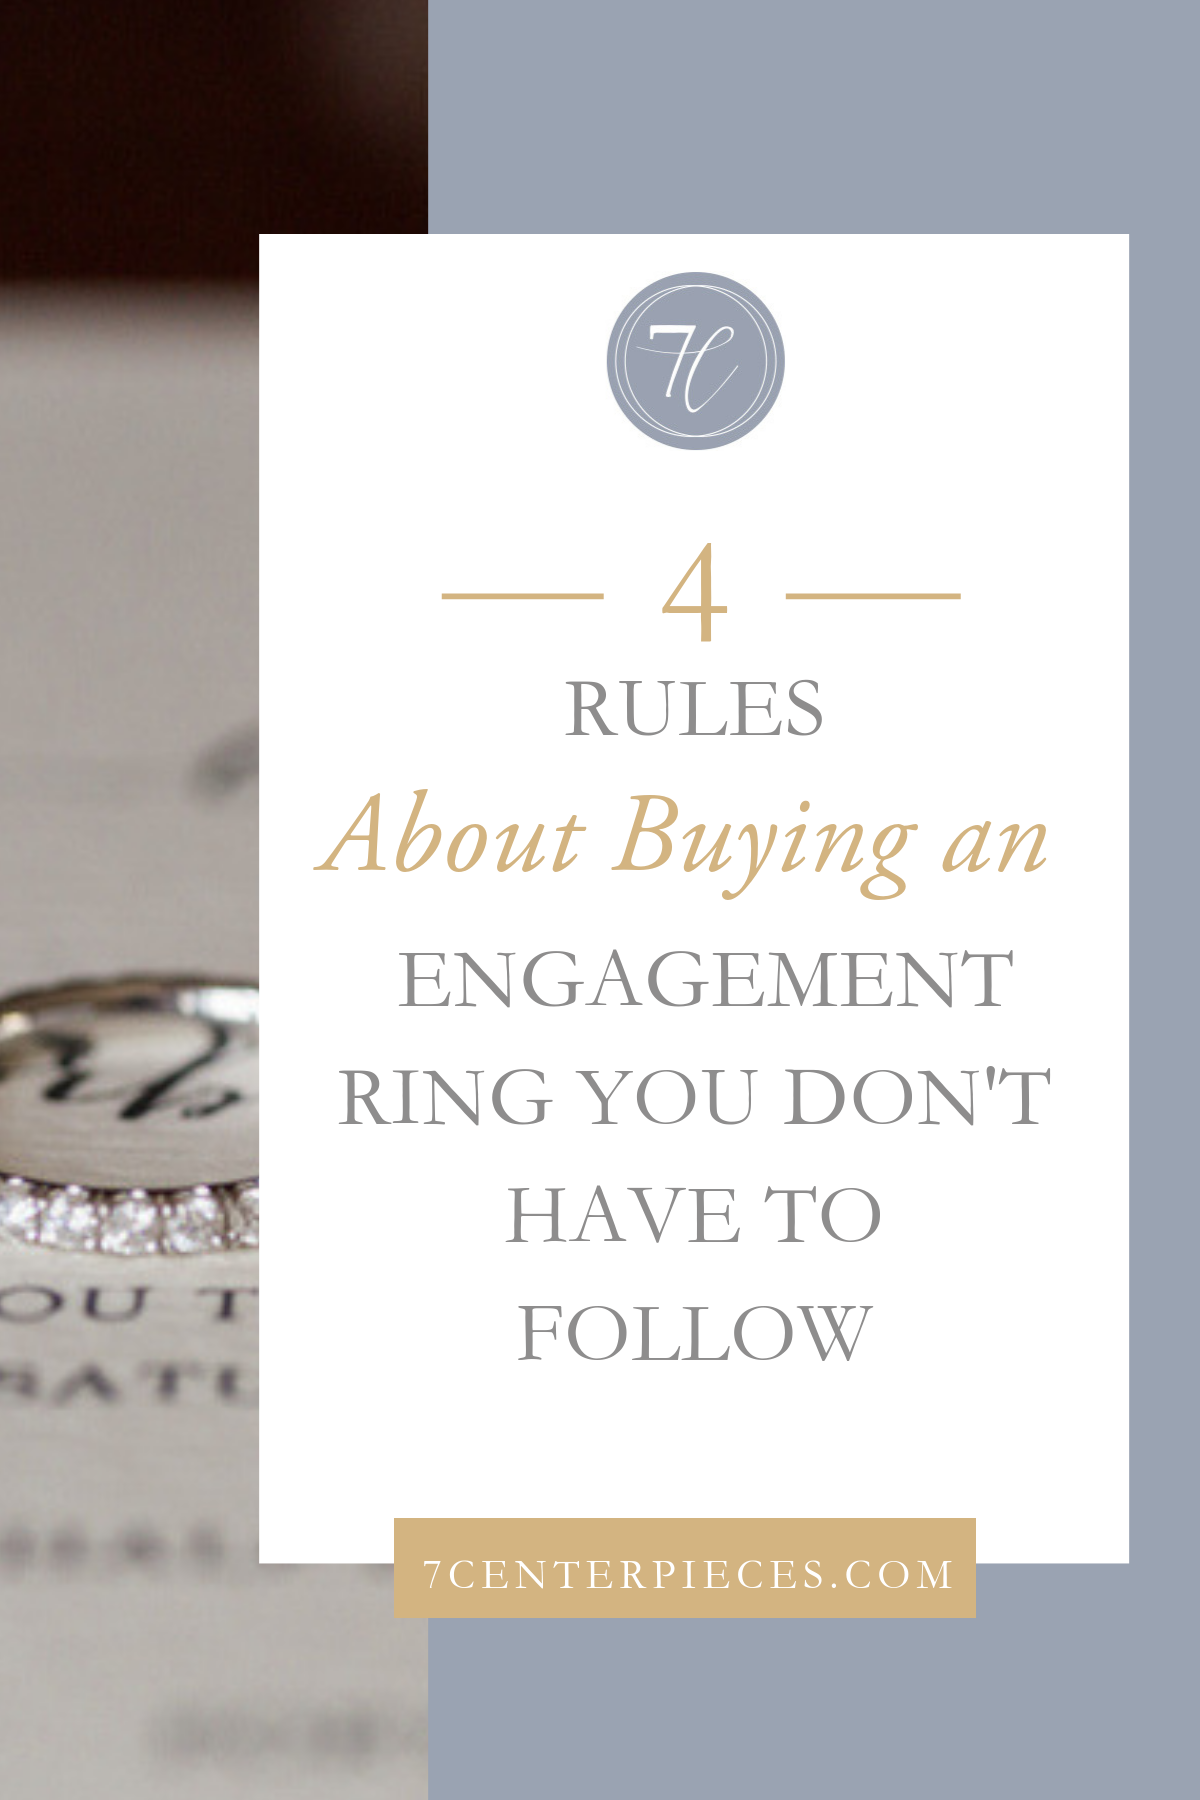 4 Rules About Buying an Engagement Ring You Don't Have to Follow